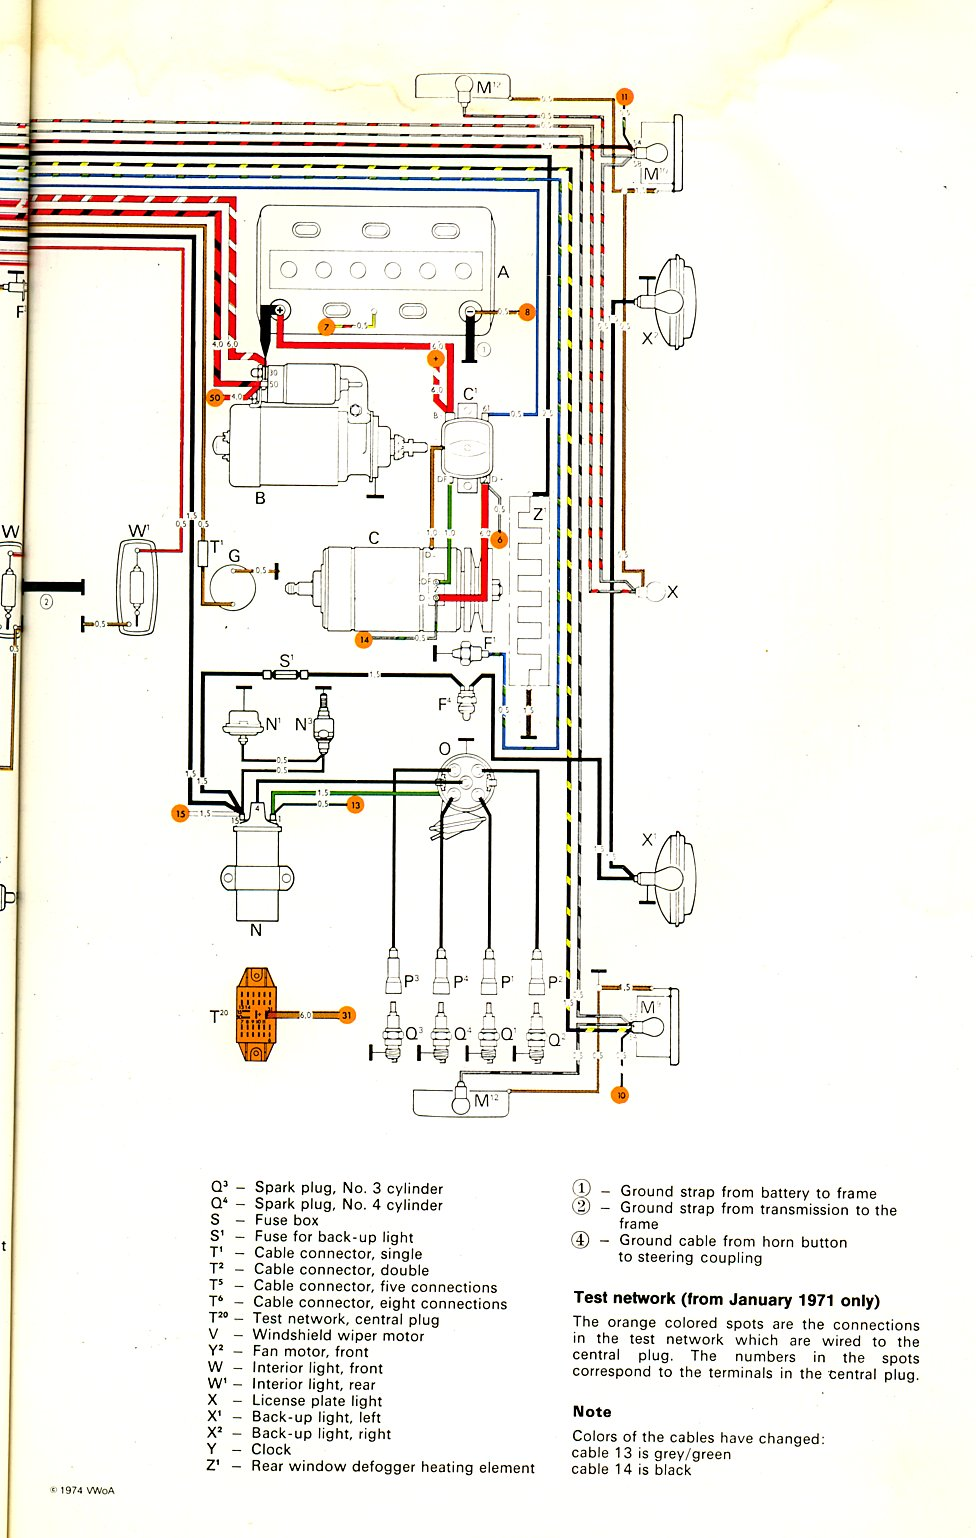 baybus_71b thesamba com type 2 wiring diagrams VW Jetta Wiring Diagram at gsmx.co